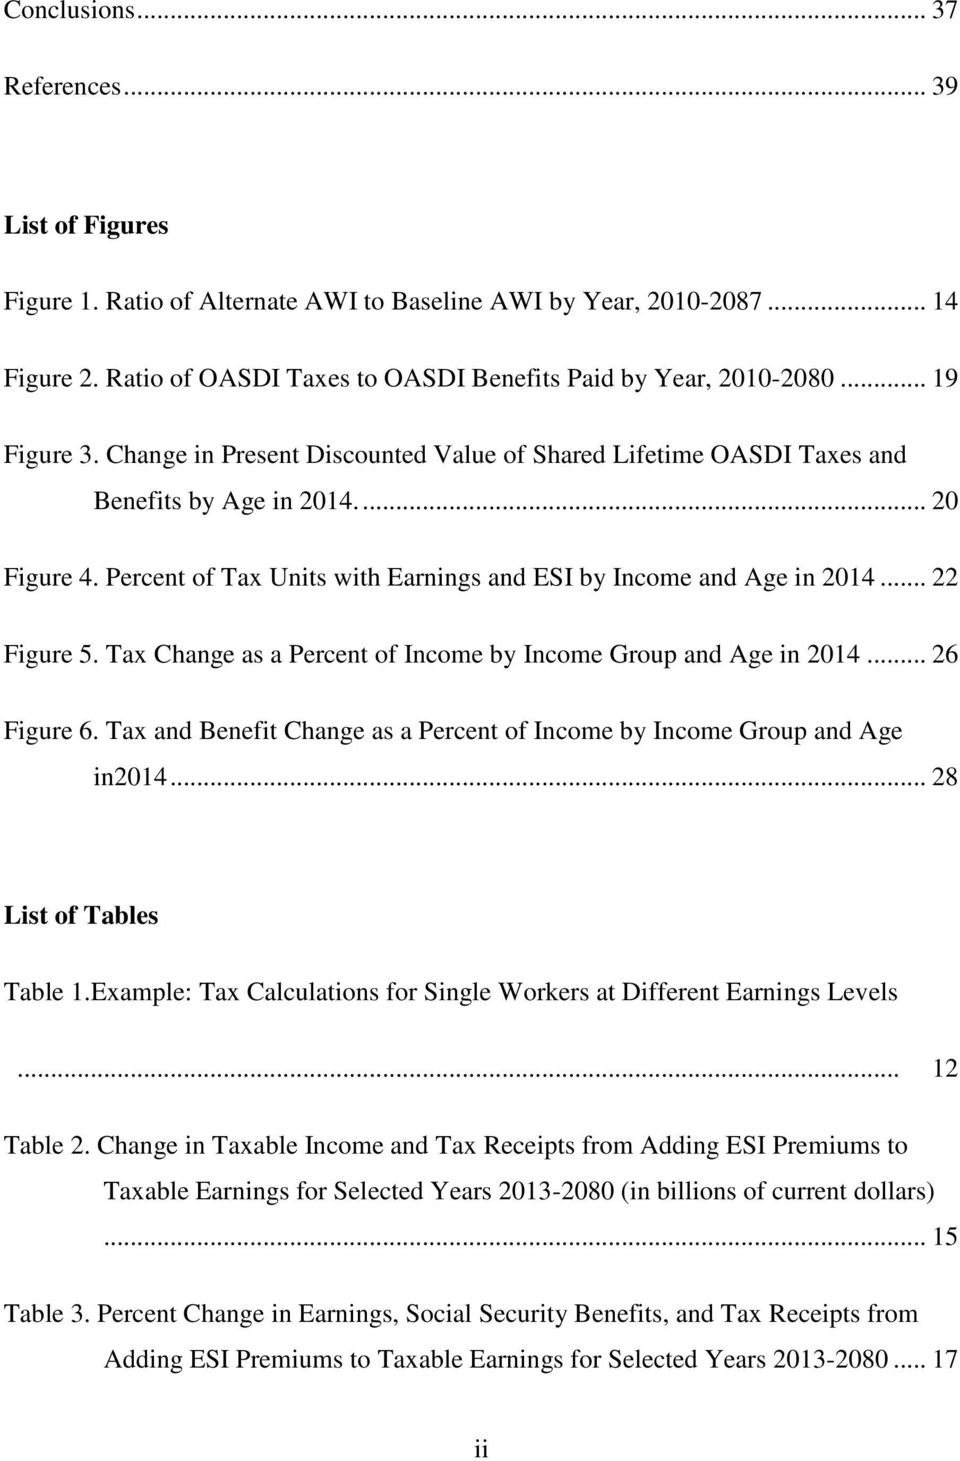 .. 22 Figure 5. Tax Change as a Percent of Income by Income Group and Age in 2014... 26 Figure 6. Tax and Benefit Change as a Percent of Income by Income Group and Age in2014.